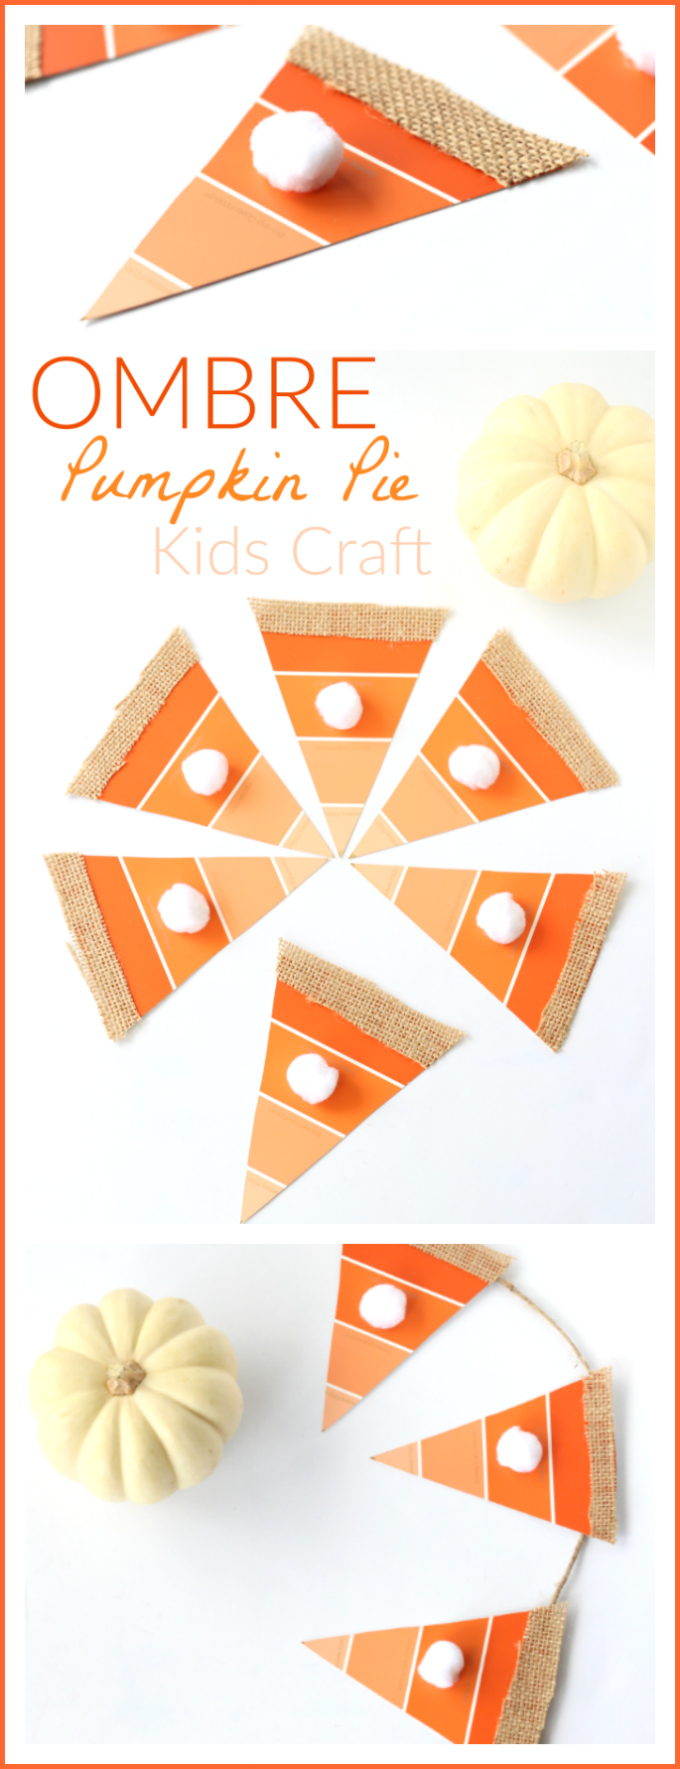 Ombre pumpkin pie craft pinterest